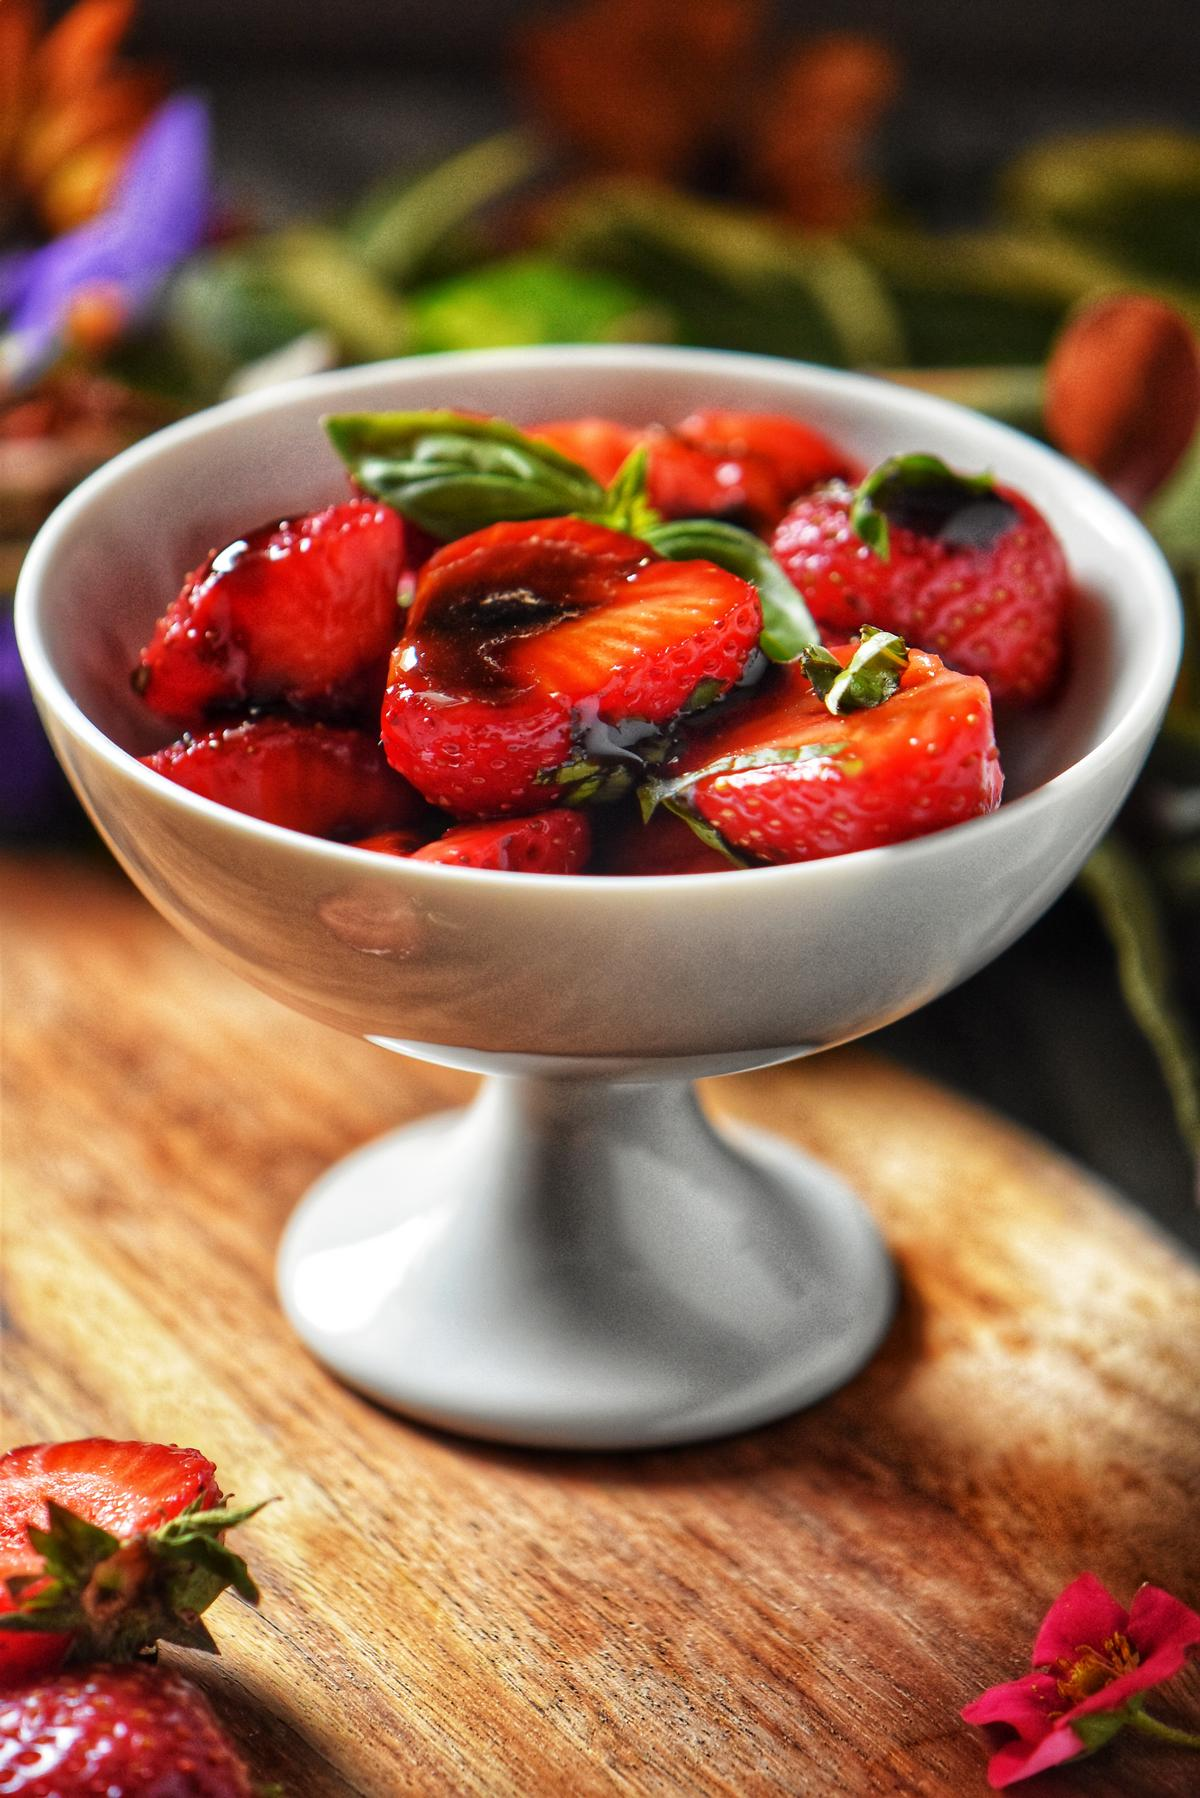 Balsamic strawberries in a white bowl.